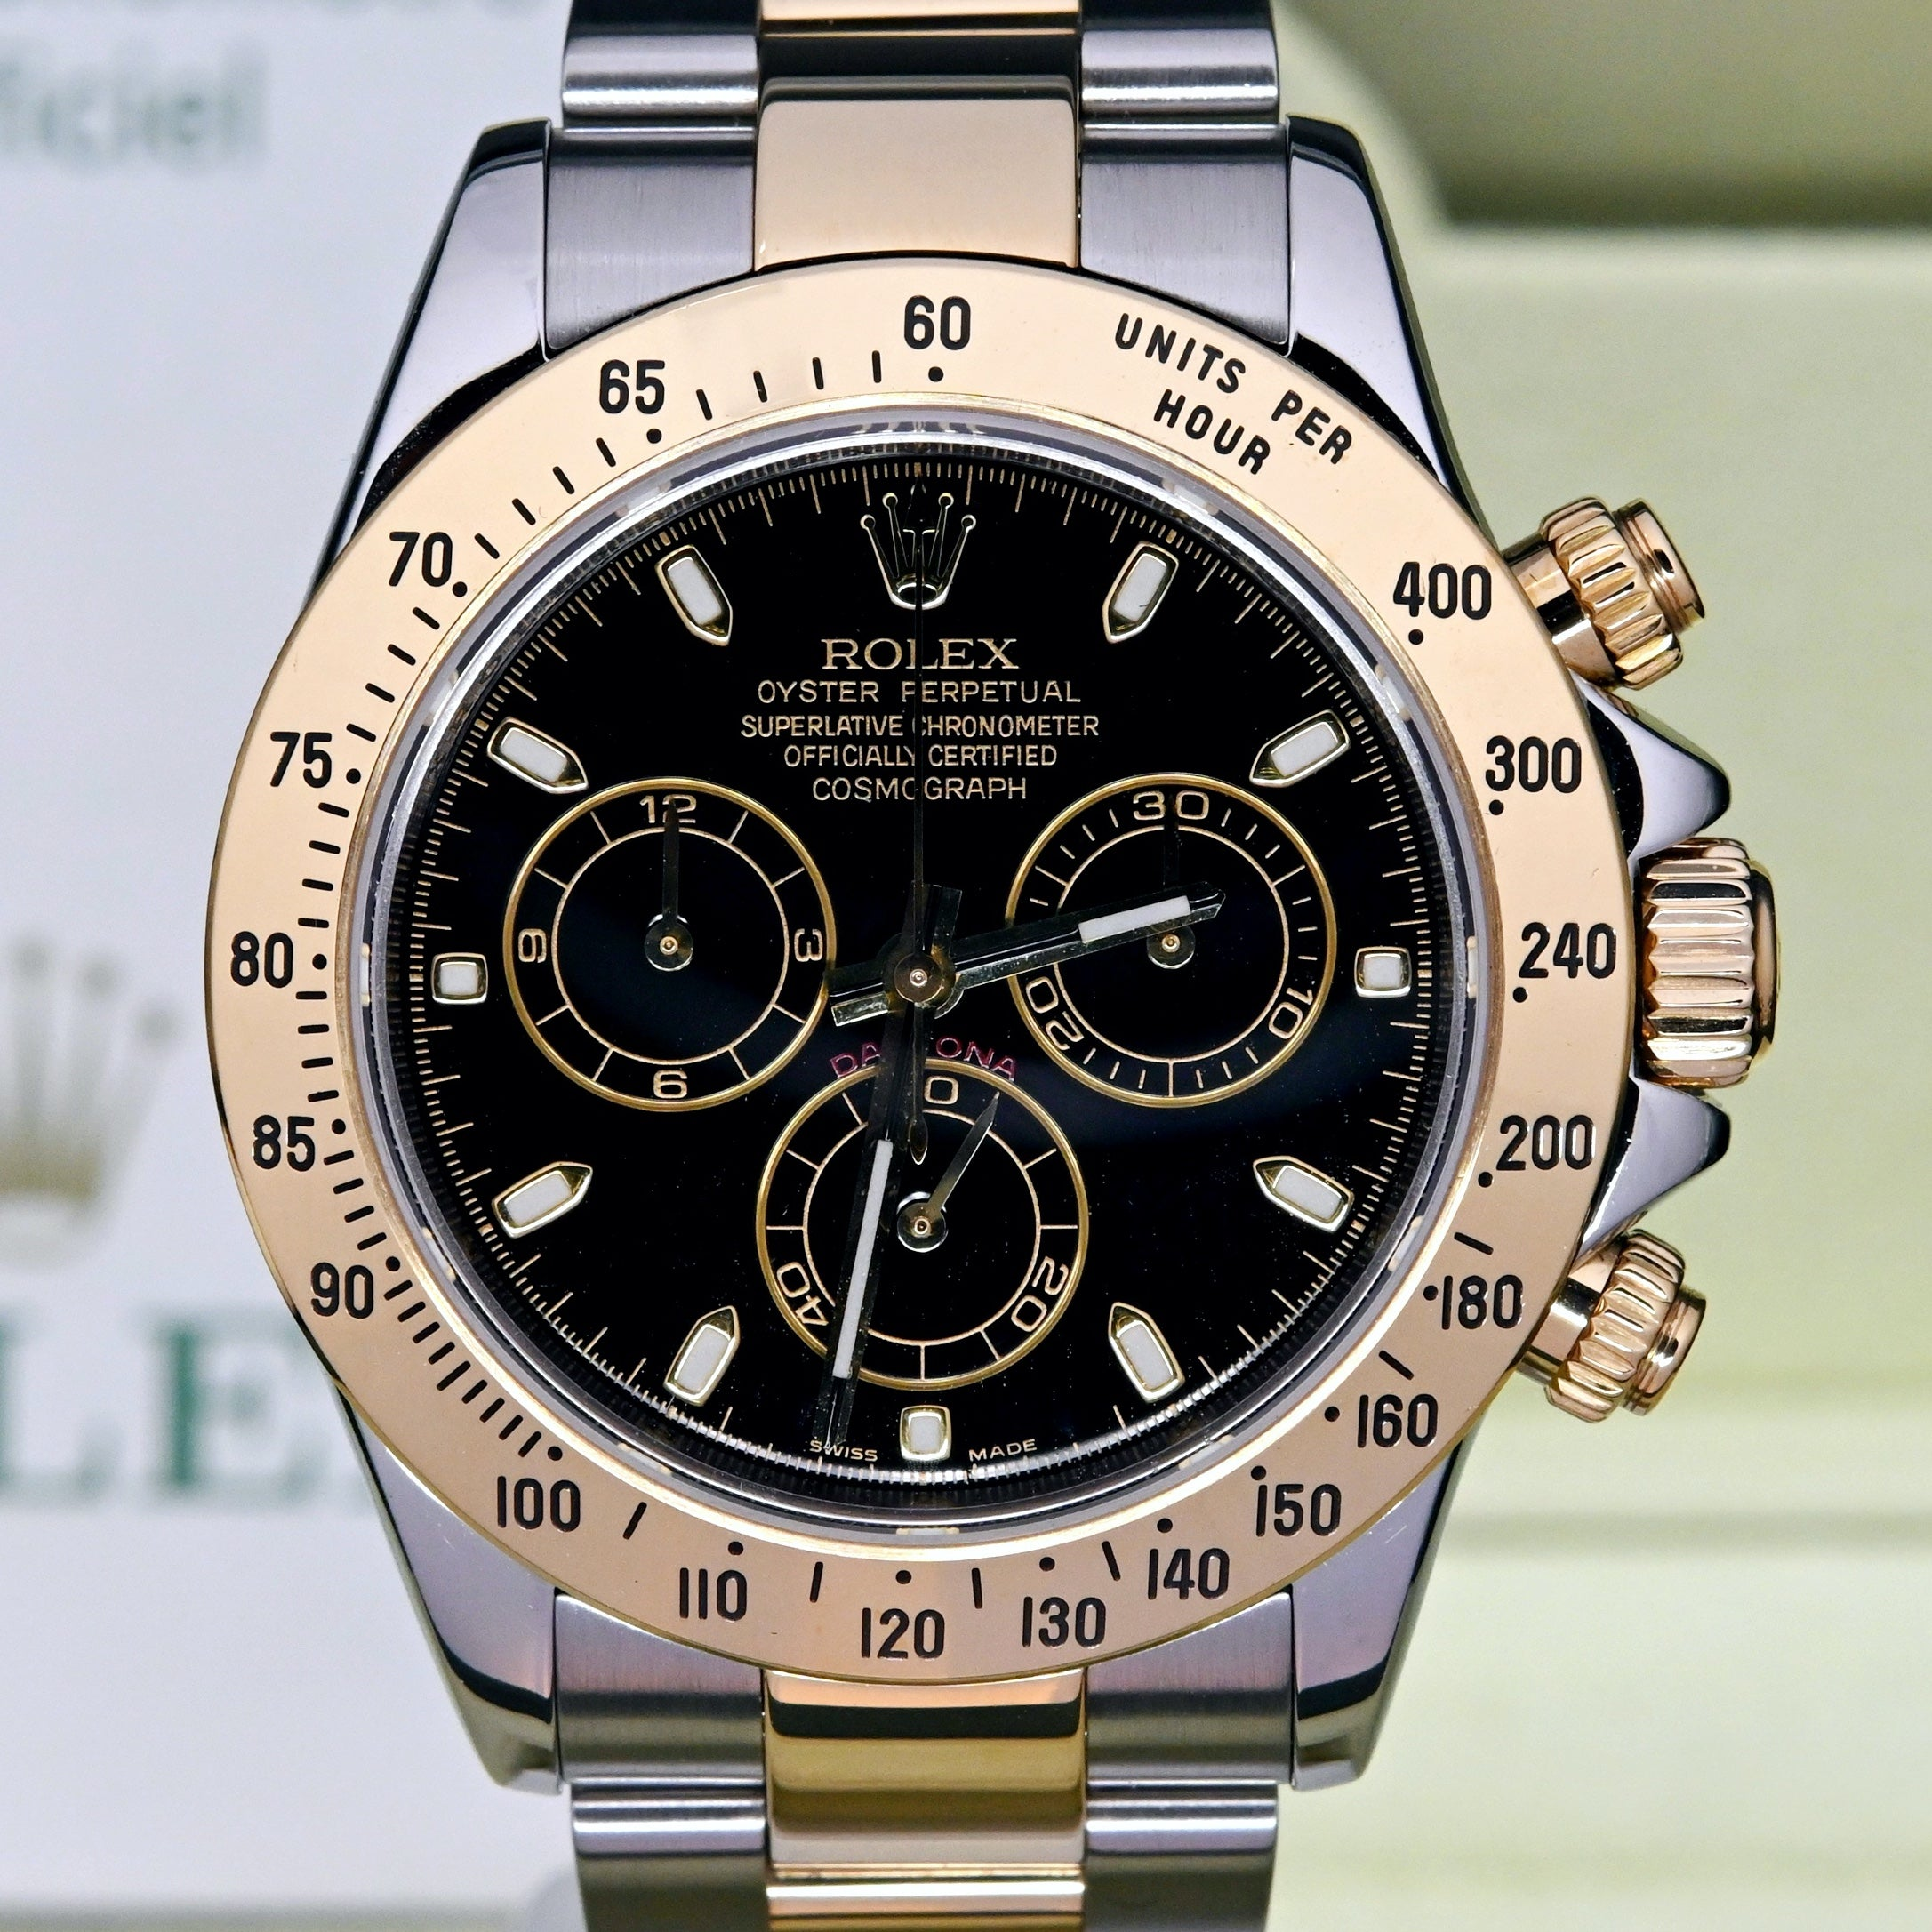 [Pre-Owned Watch] Rolex Cosmograph Daytona 40mm 116523 Black Dial (Out of Production) (888)